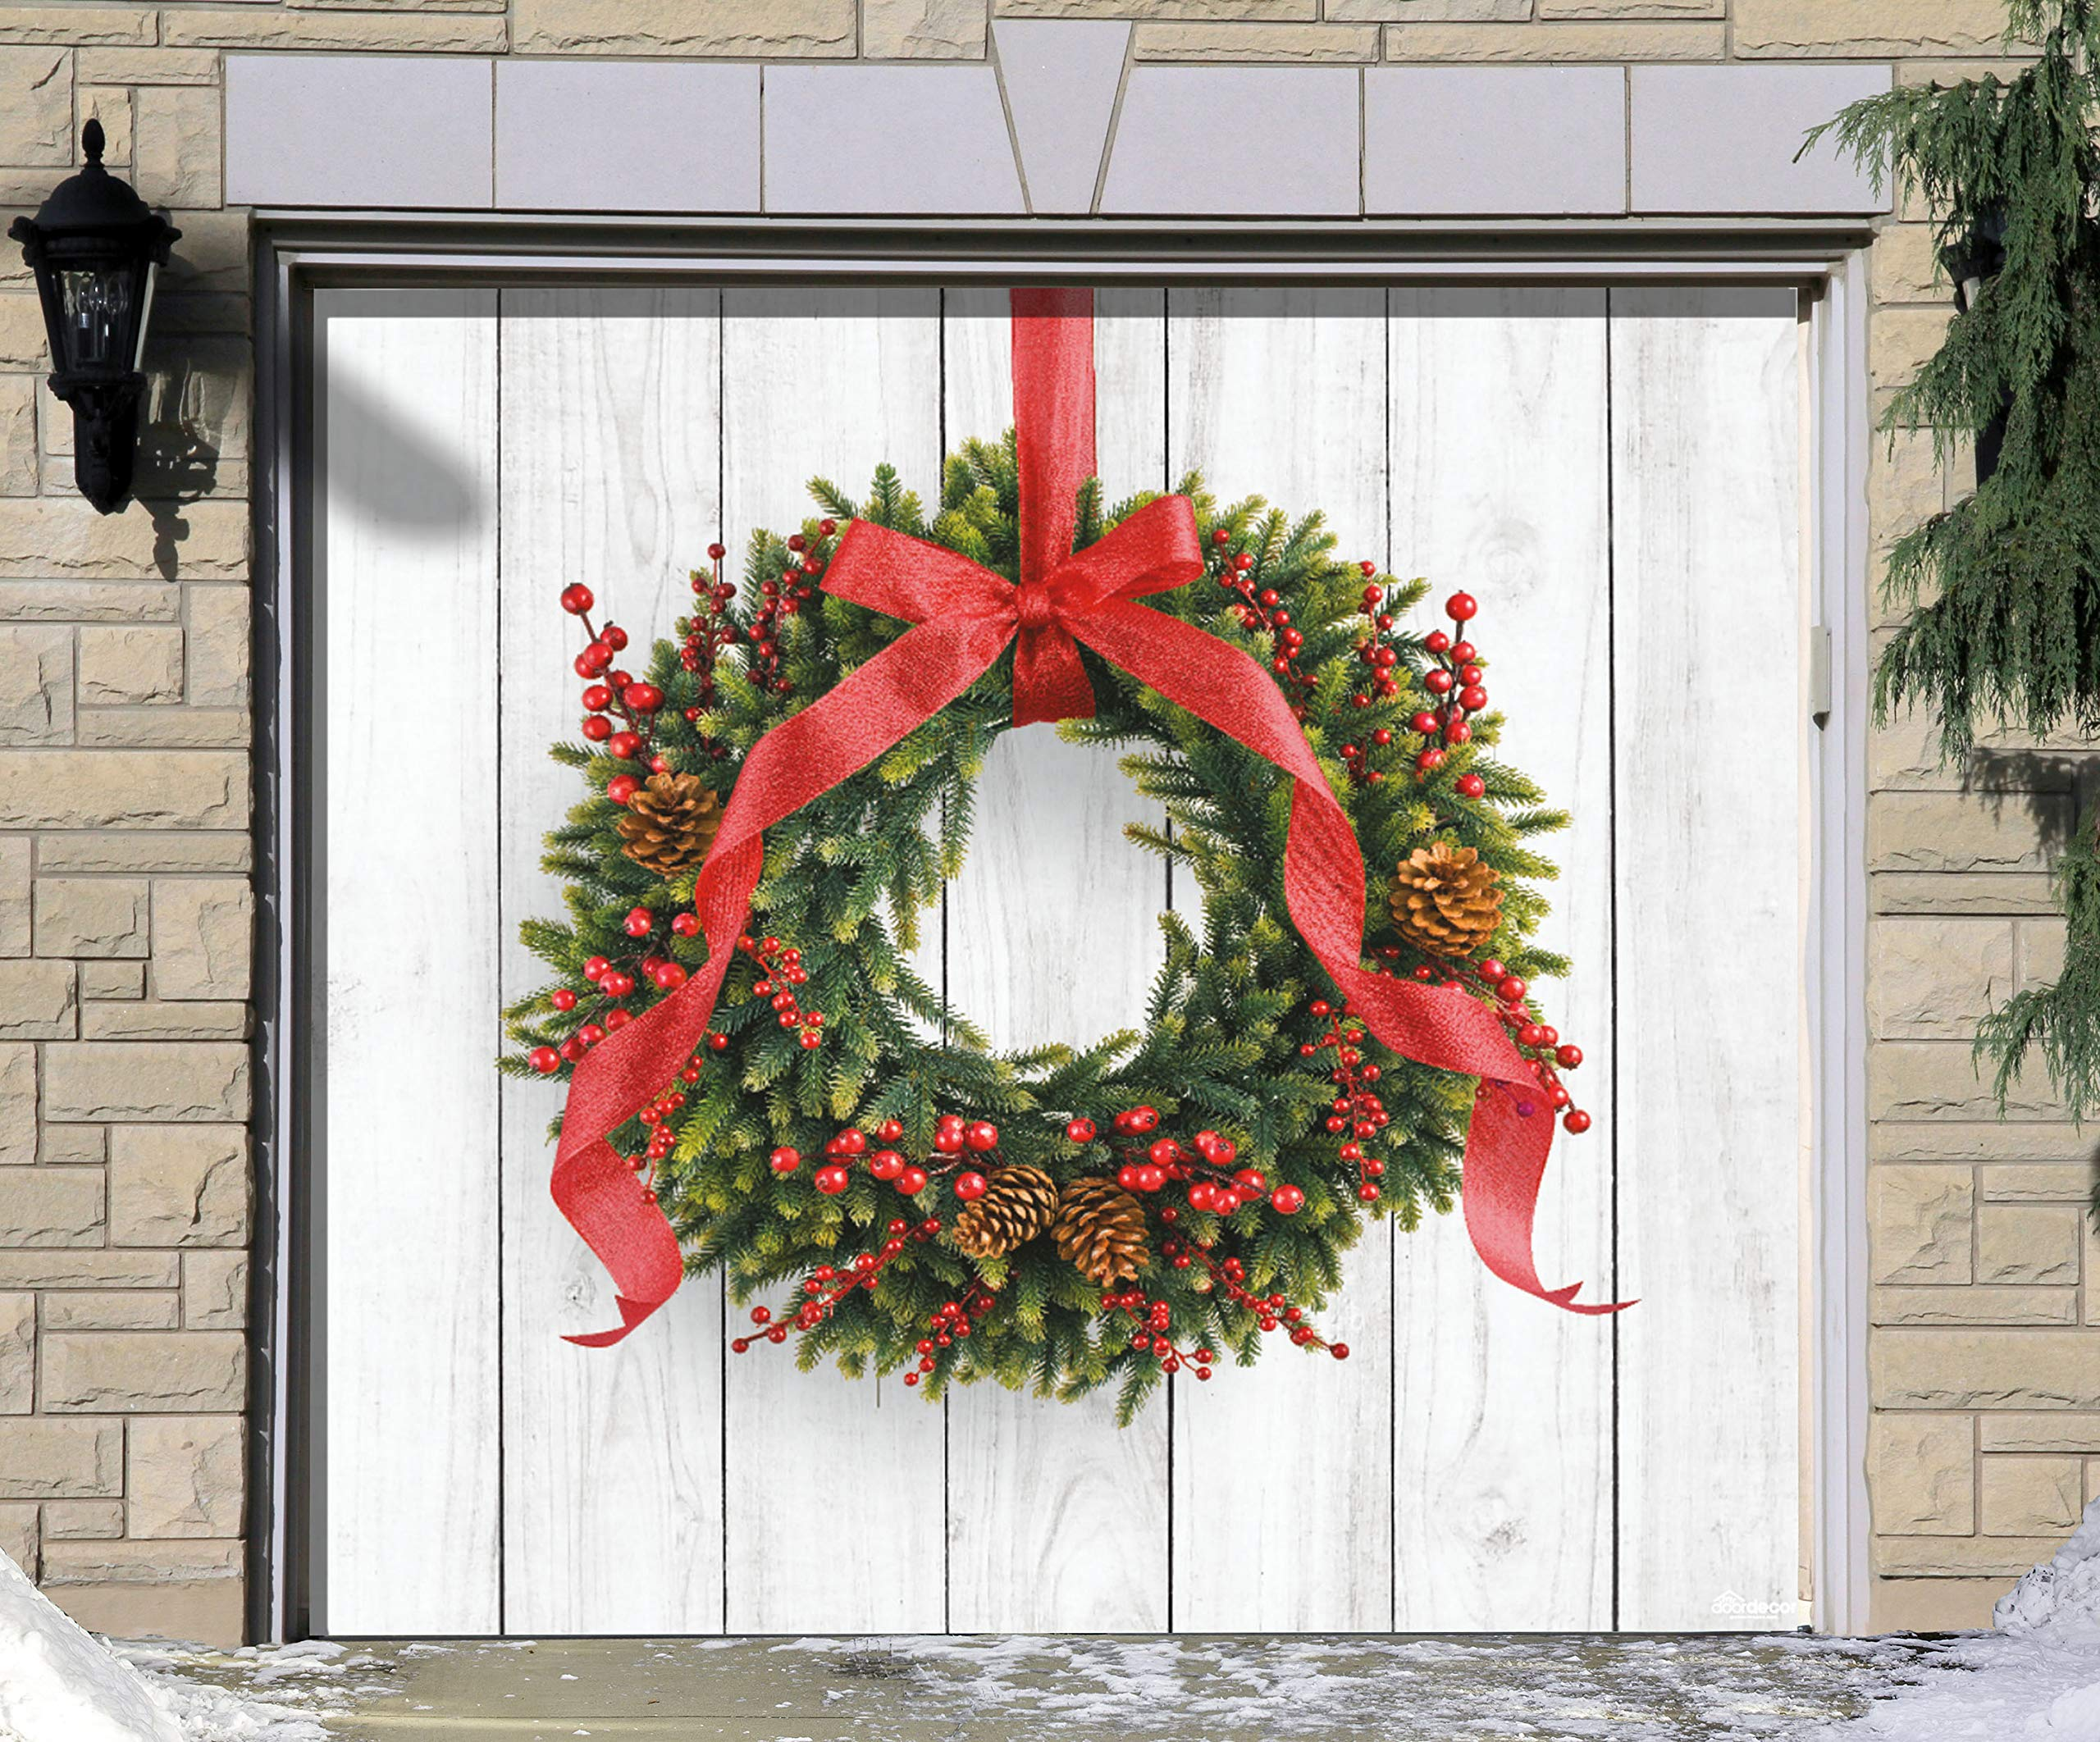 Victory Corps Christmas Wreath - Holiday Garage Door Banner Mural Sign Décor 7'x 8' Car Garage - The Original Holiday Garage Door Banner Decor